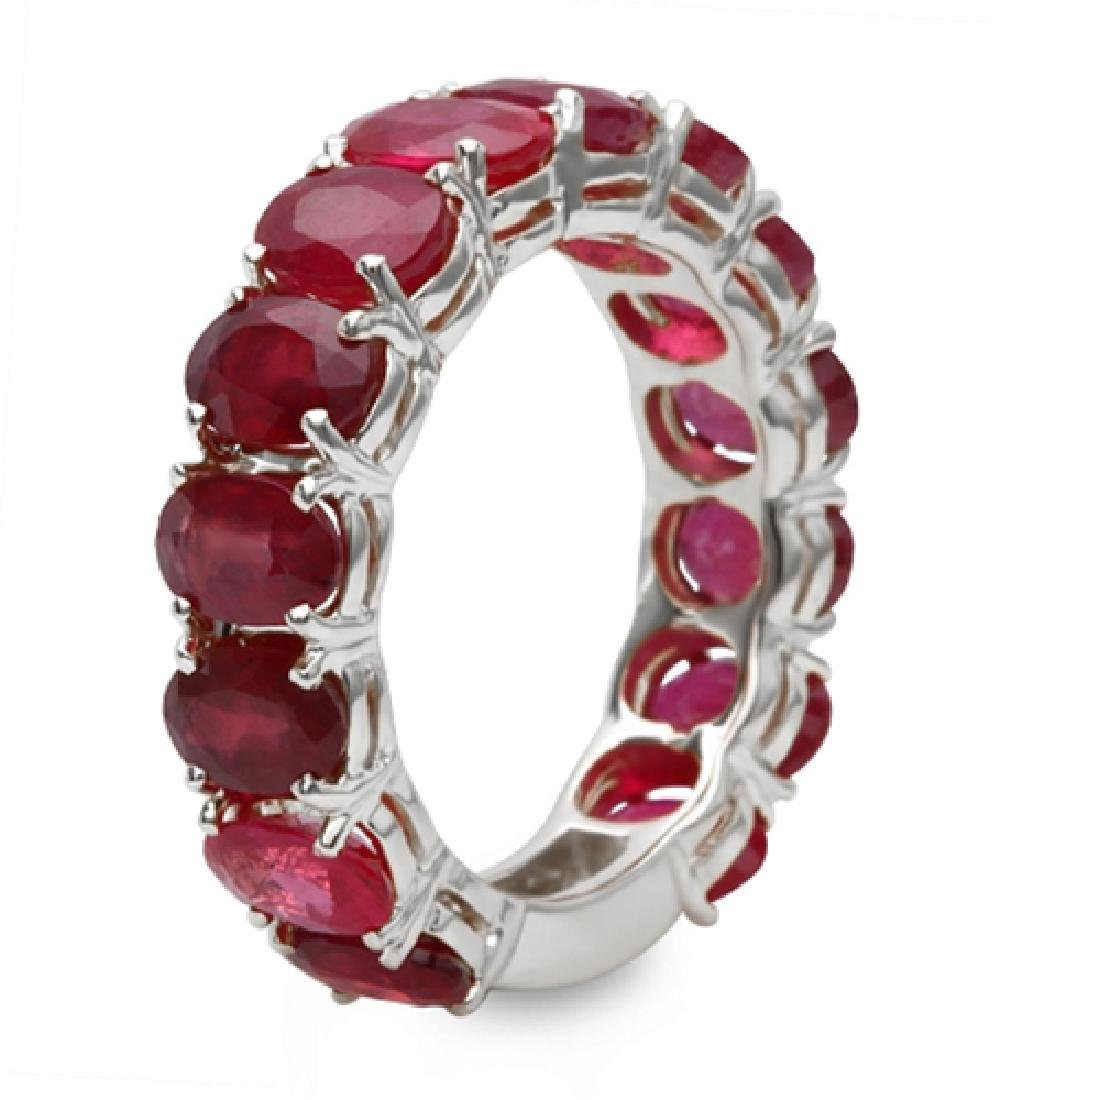 9.00 Carat Natural Ruby 18K Solid White Gold  Ring - 2